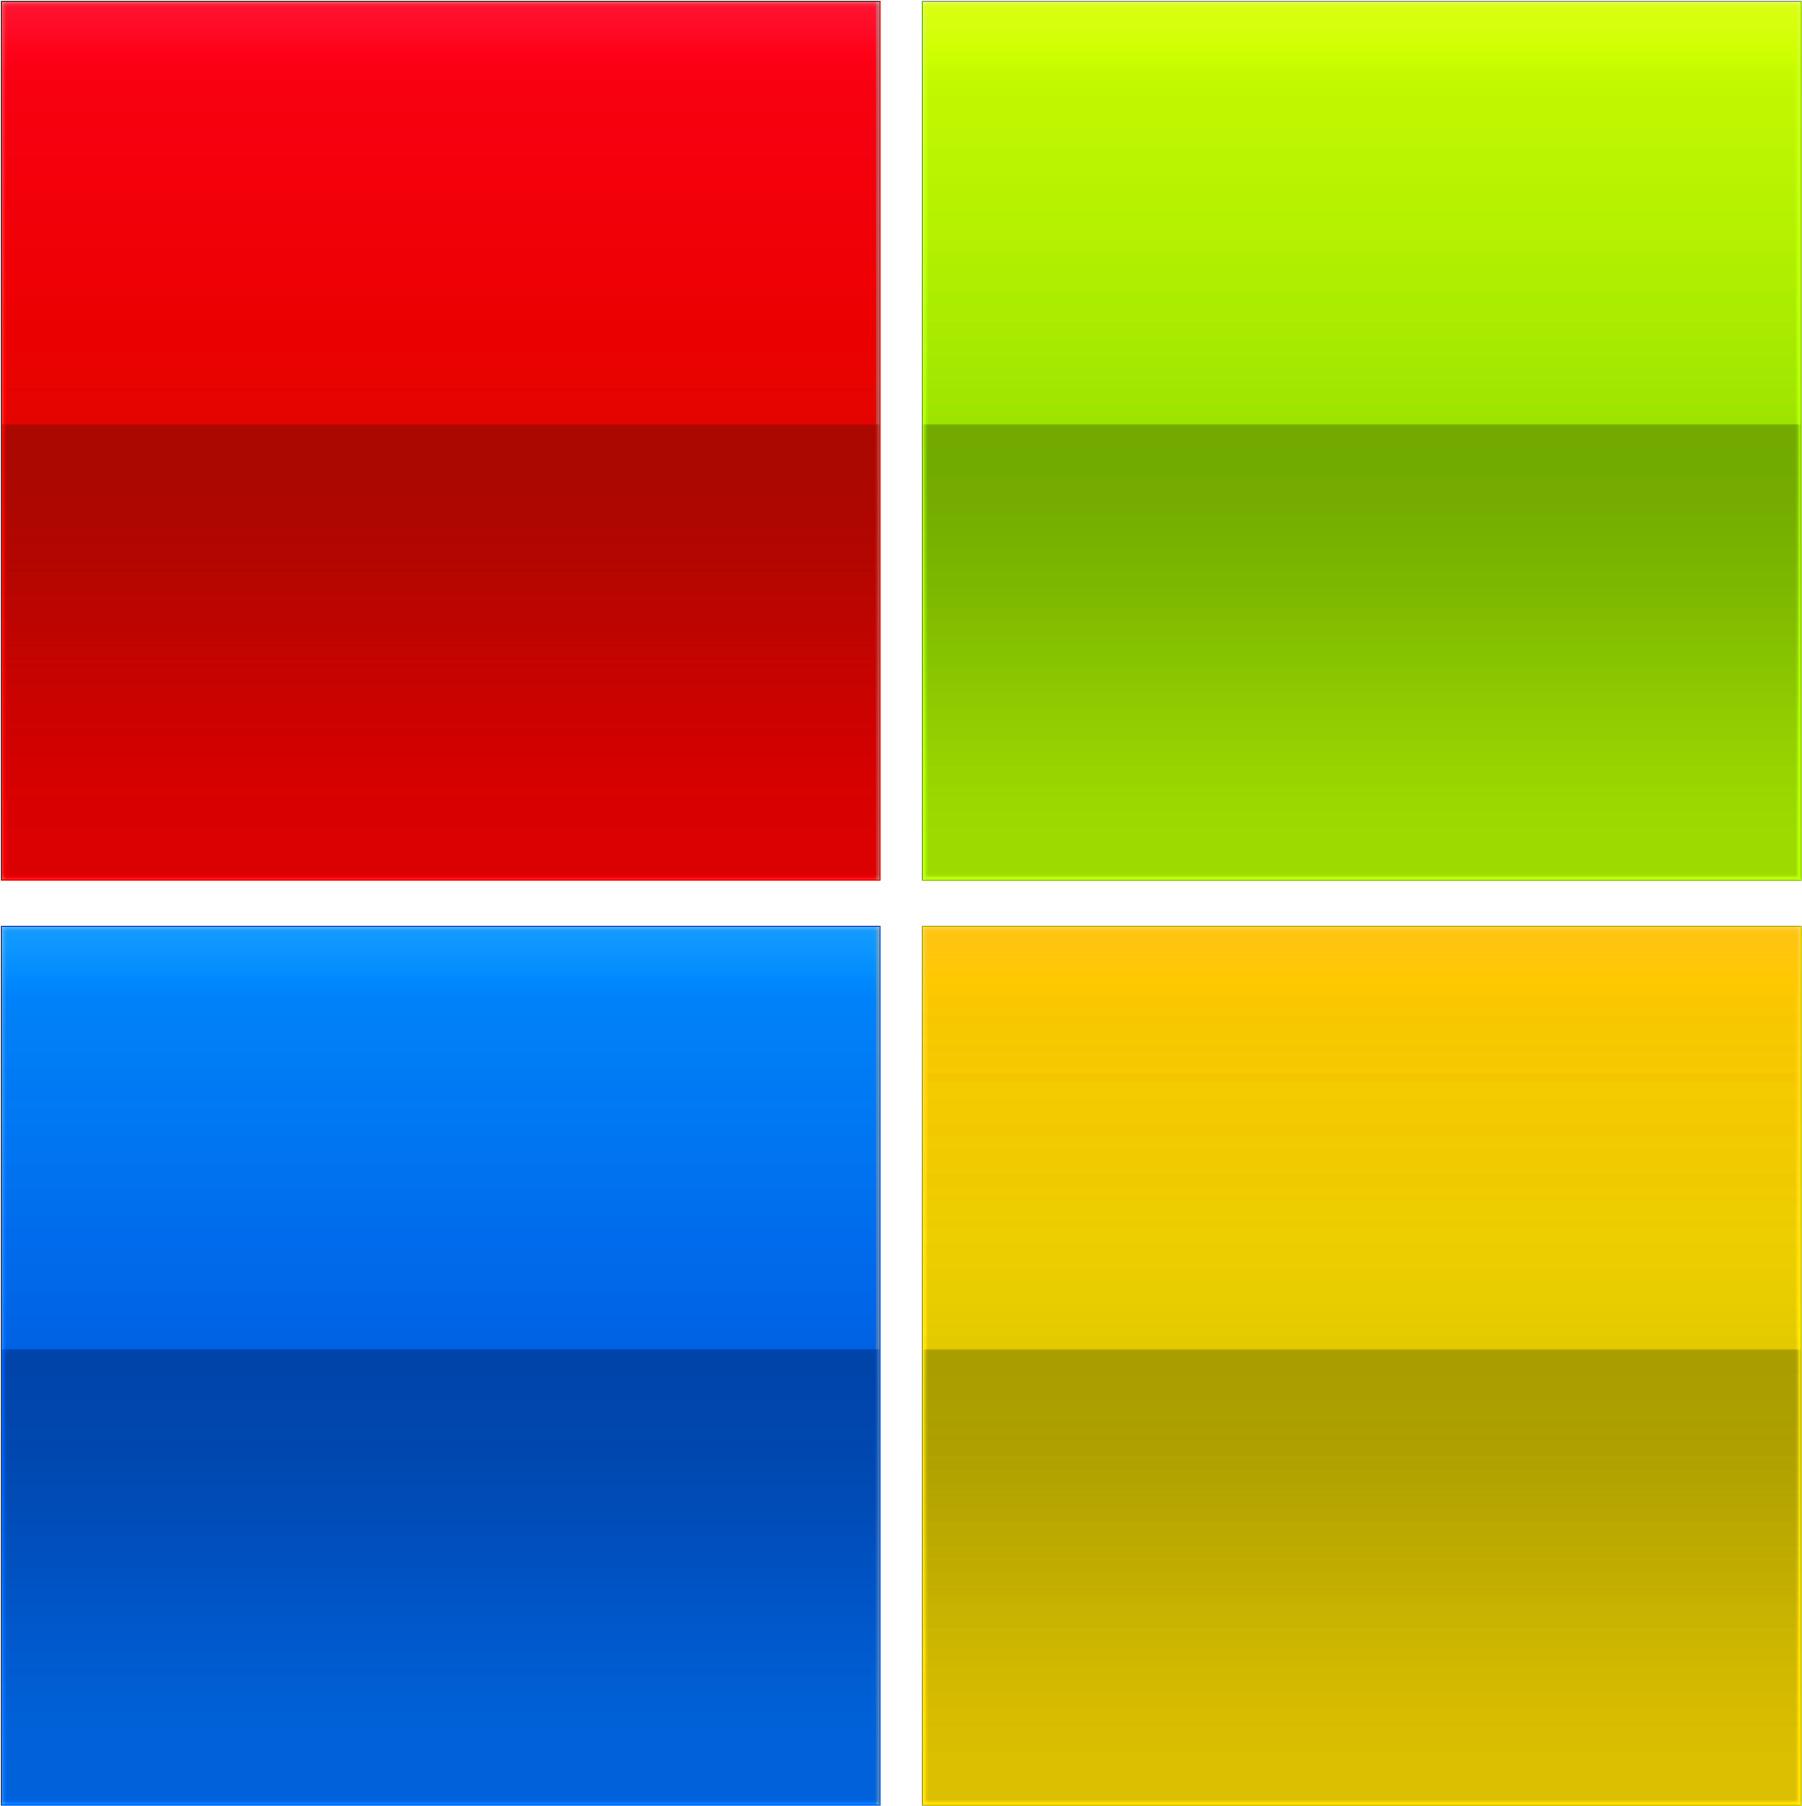 File windows squared wikimedia commons for Windows logo png